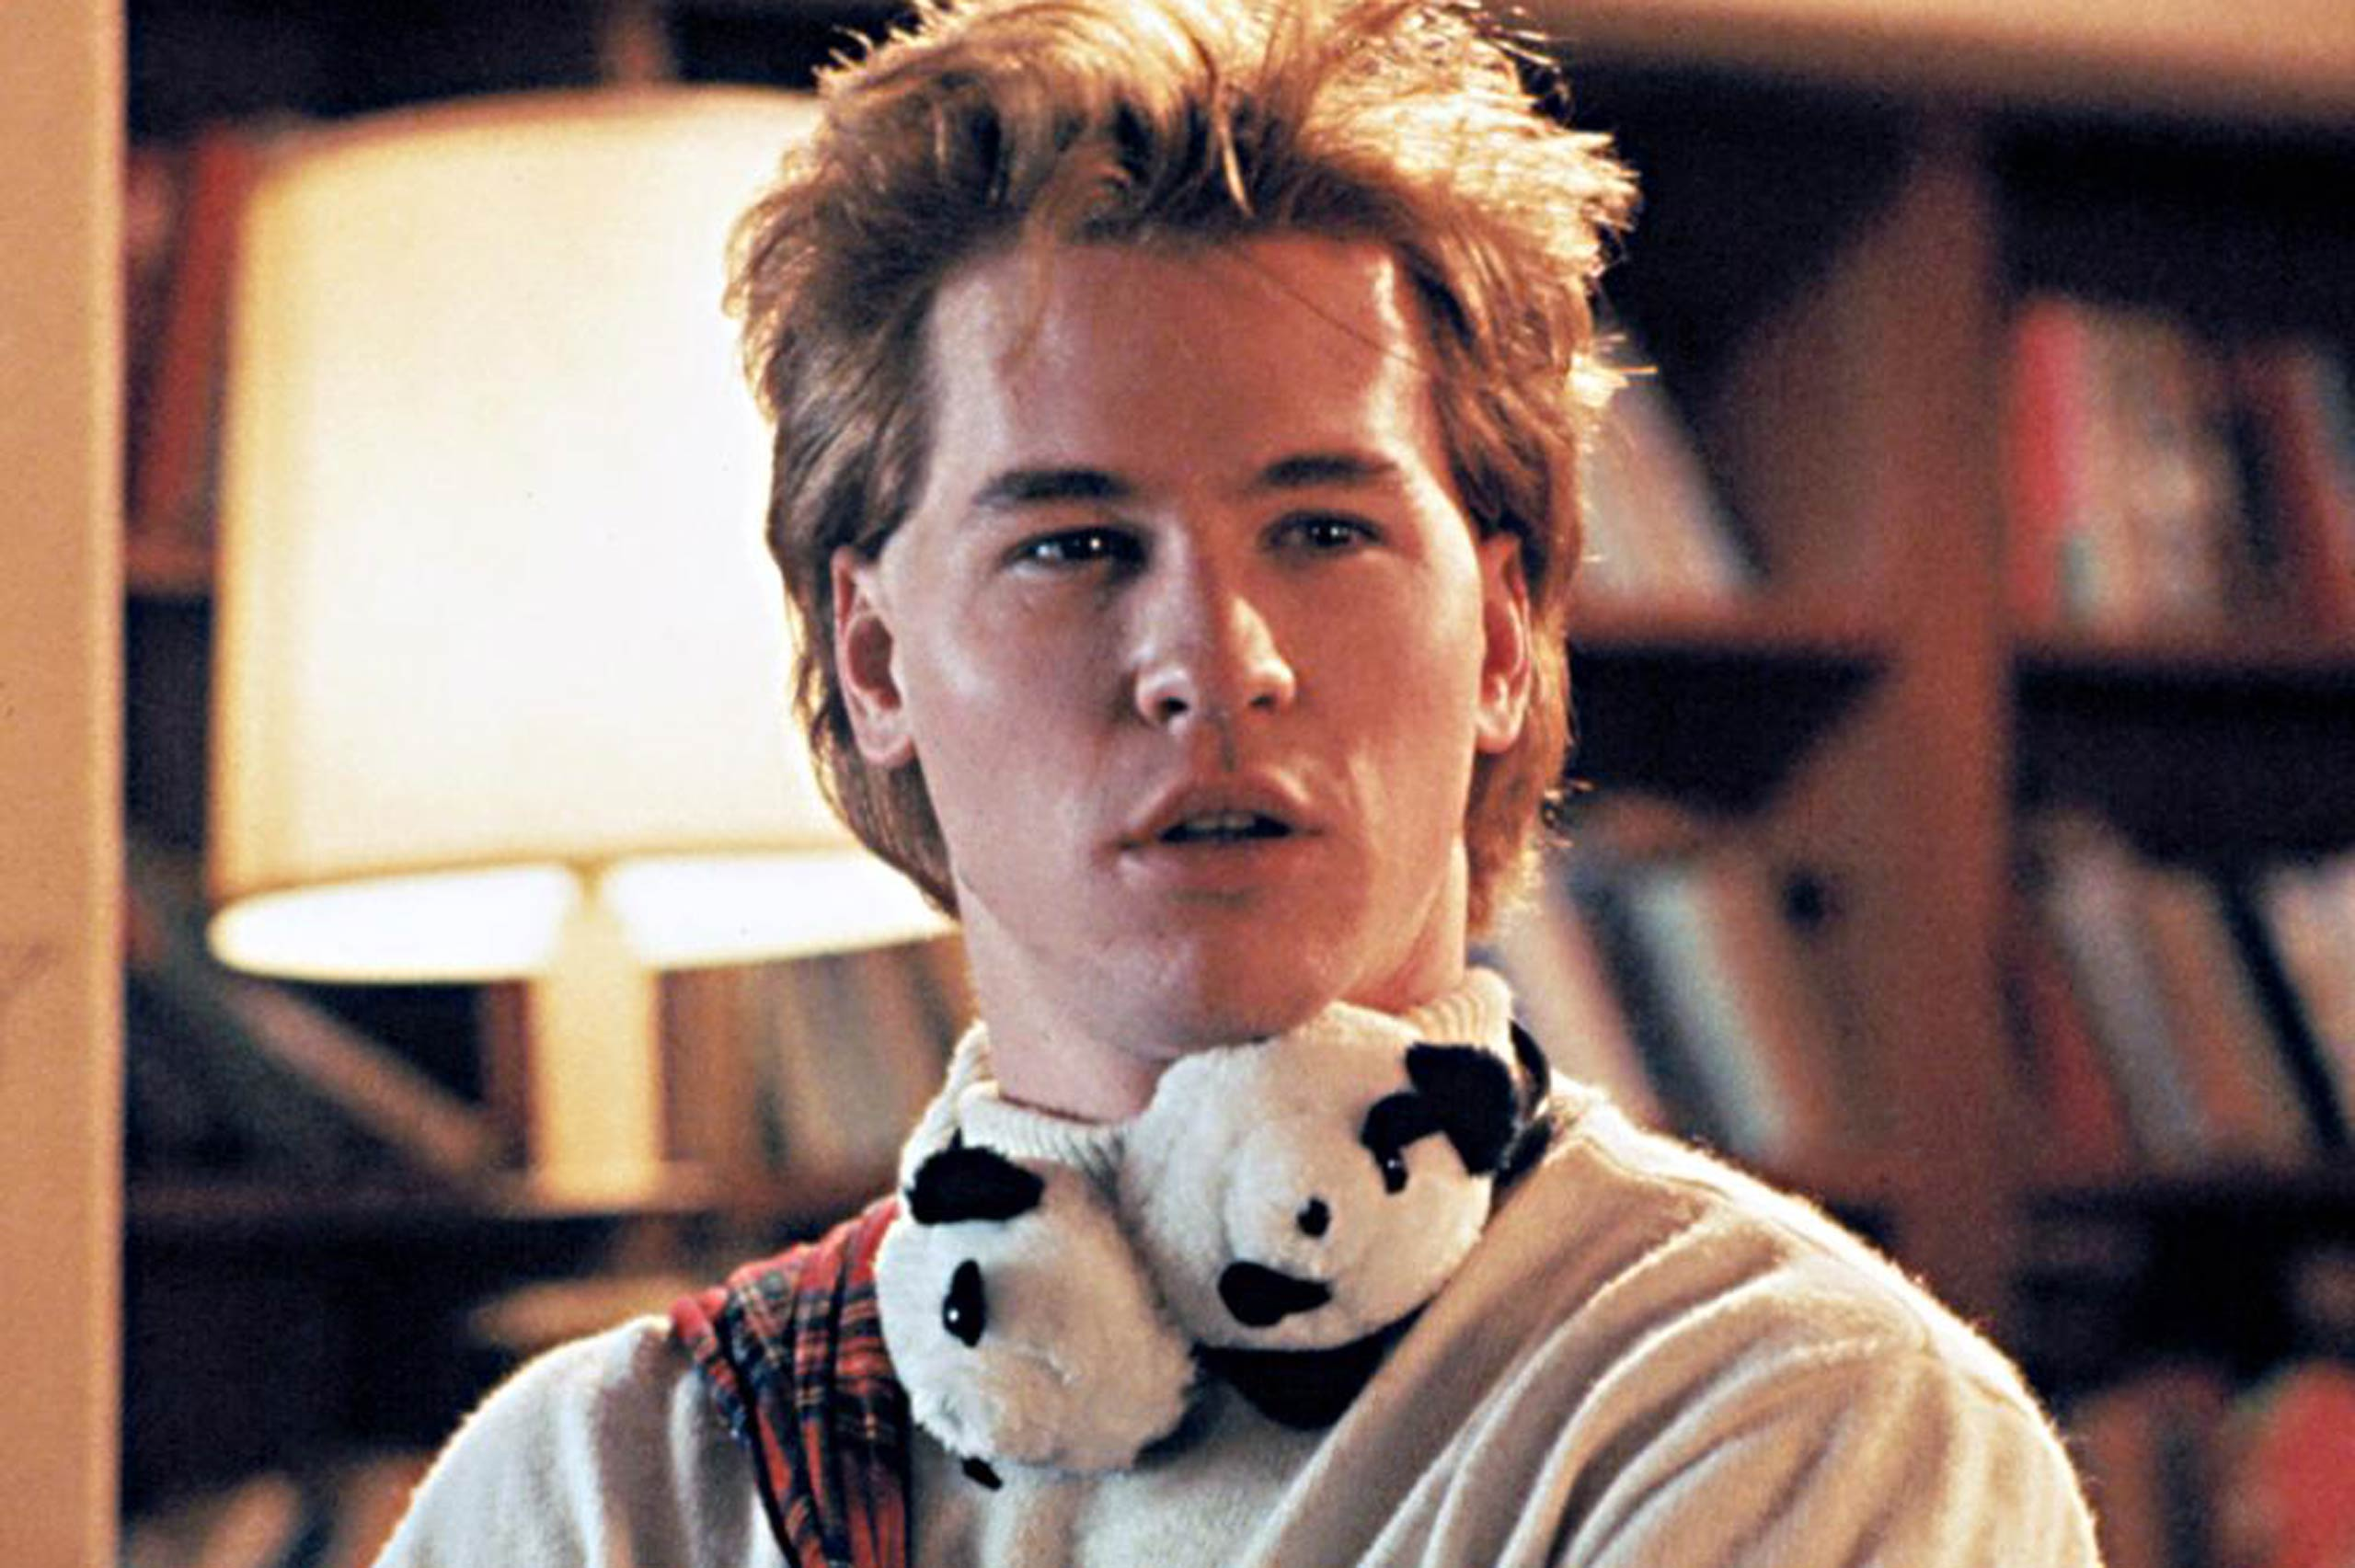 <strong><i>Real Genius</i> (NBC)</strong>                                                                      A present-day reboot of the cult Val Kilmer film, <i>Real Genius</i> will be a workplace comedy about the relationship between a physics legend and his naive coworker.